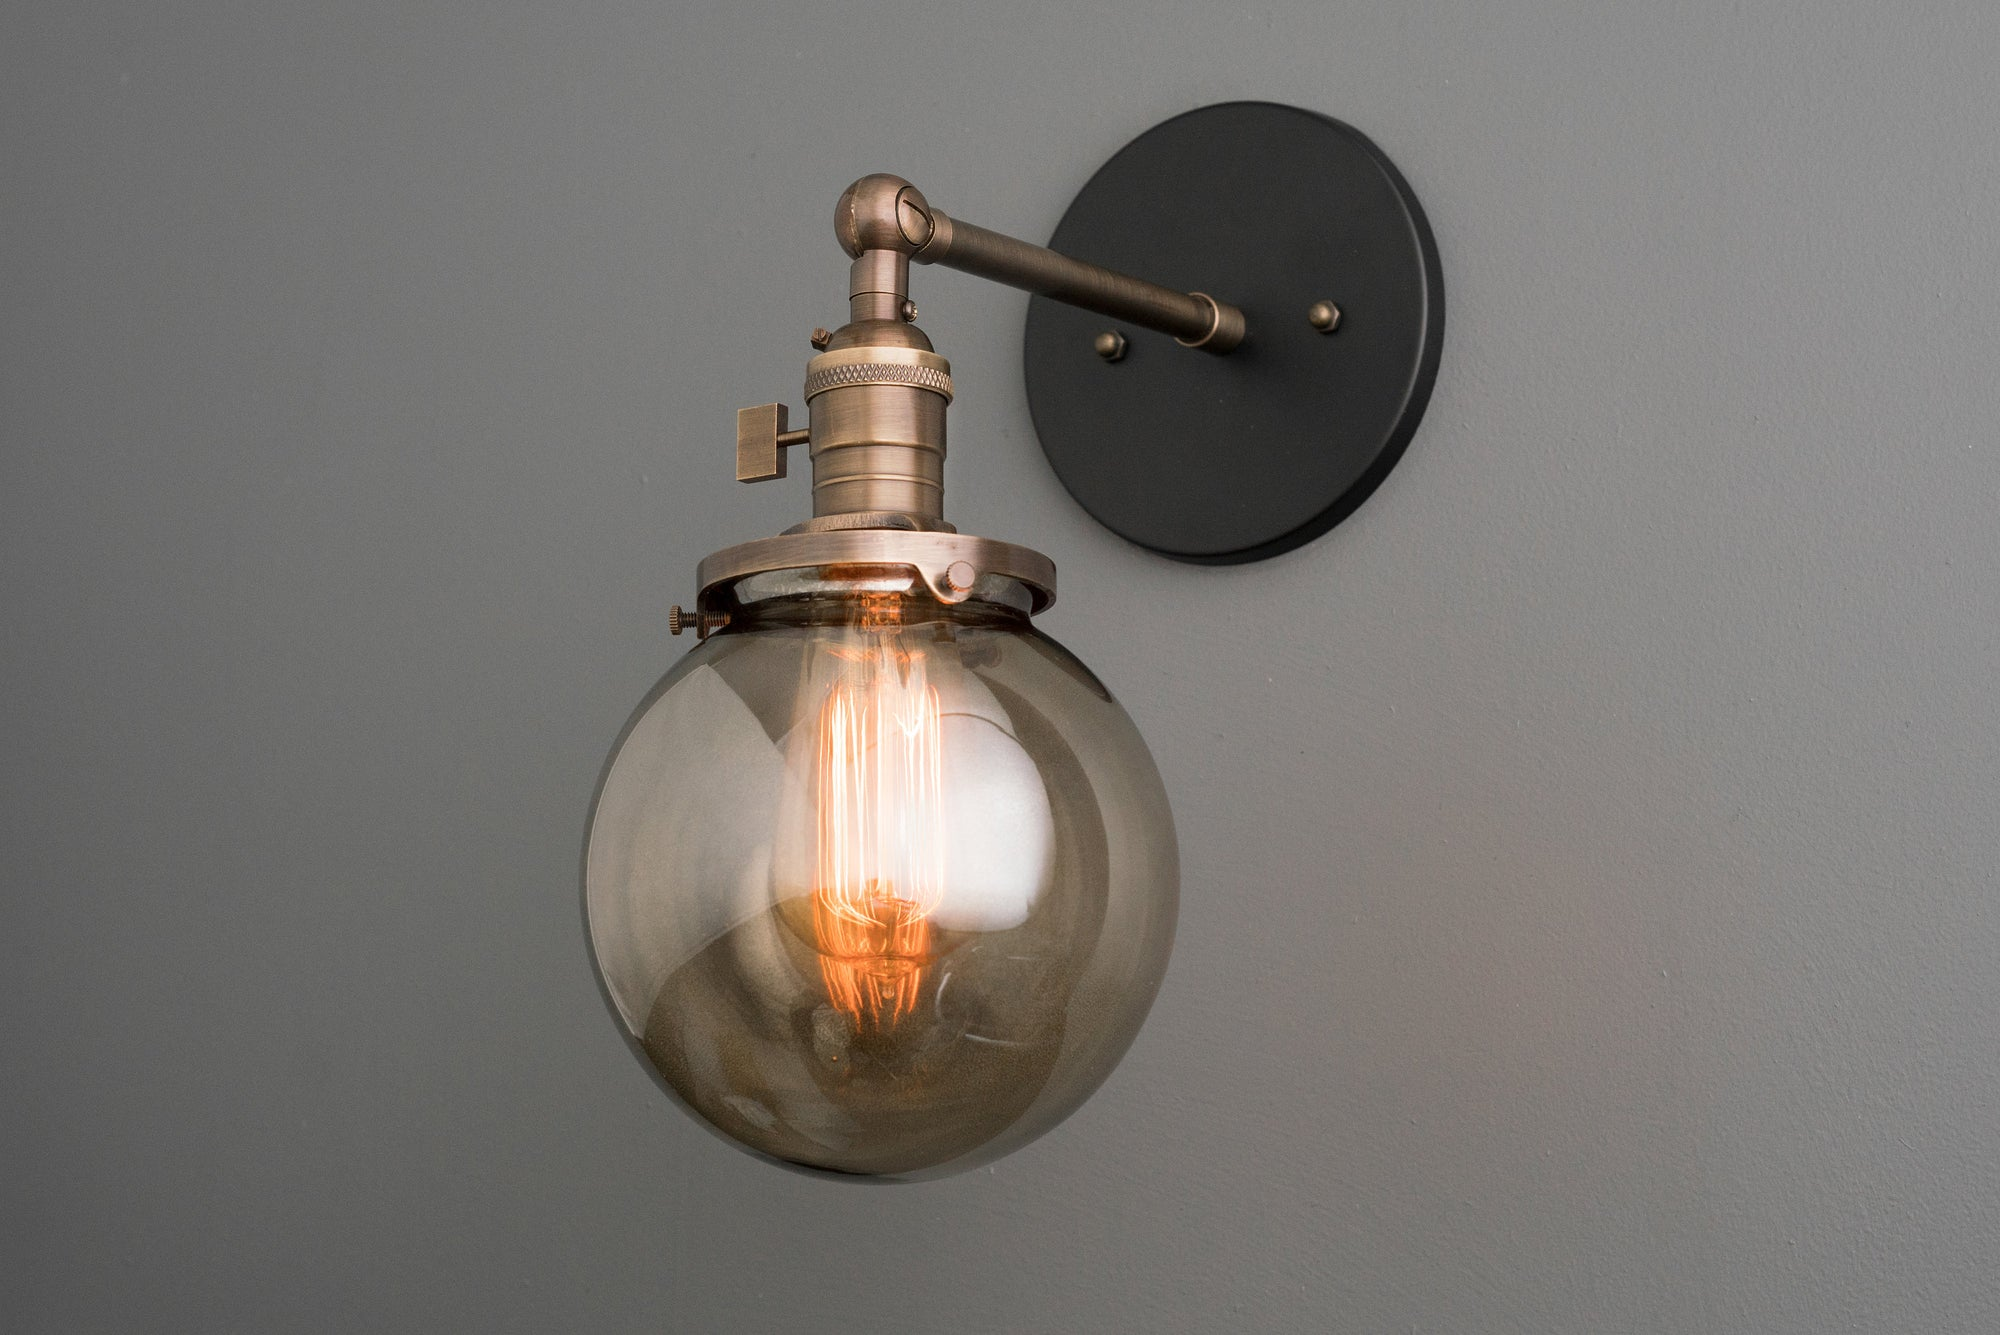 Sconce light smoked globe light globe wall light lighting fixtur peared creation